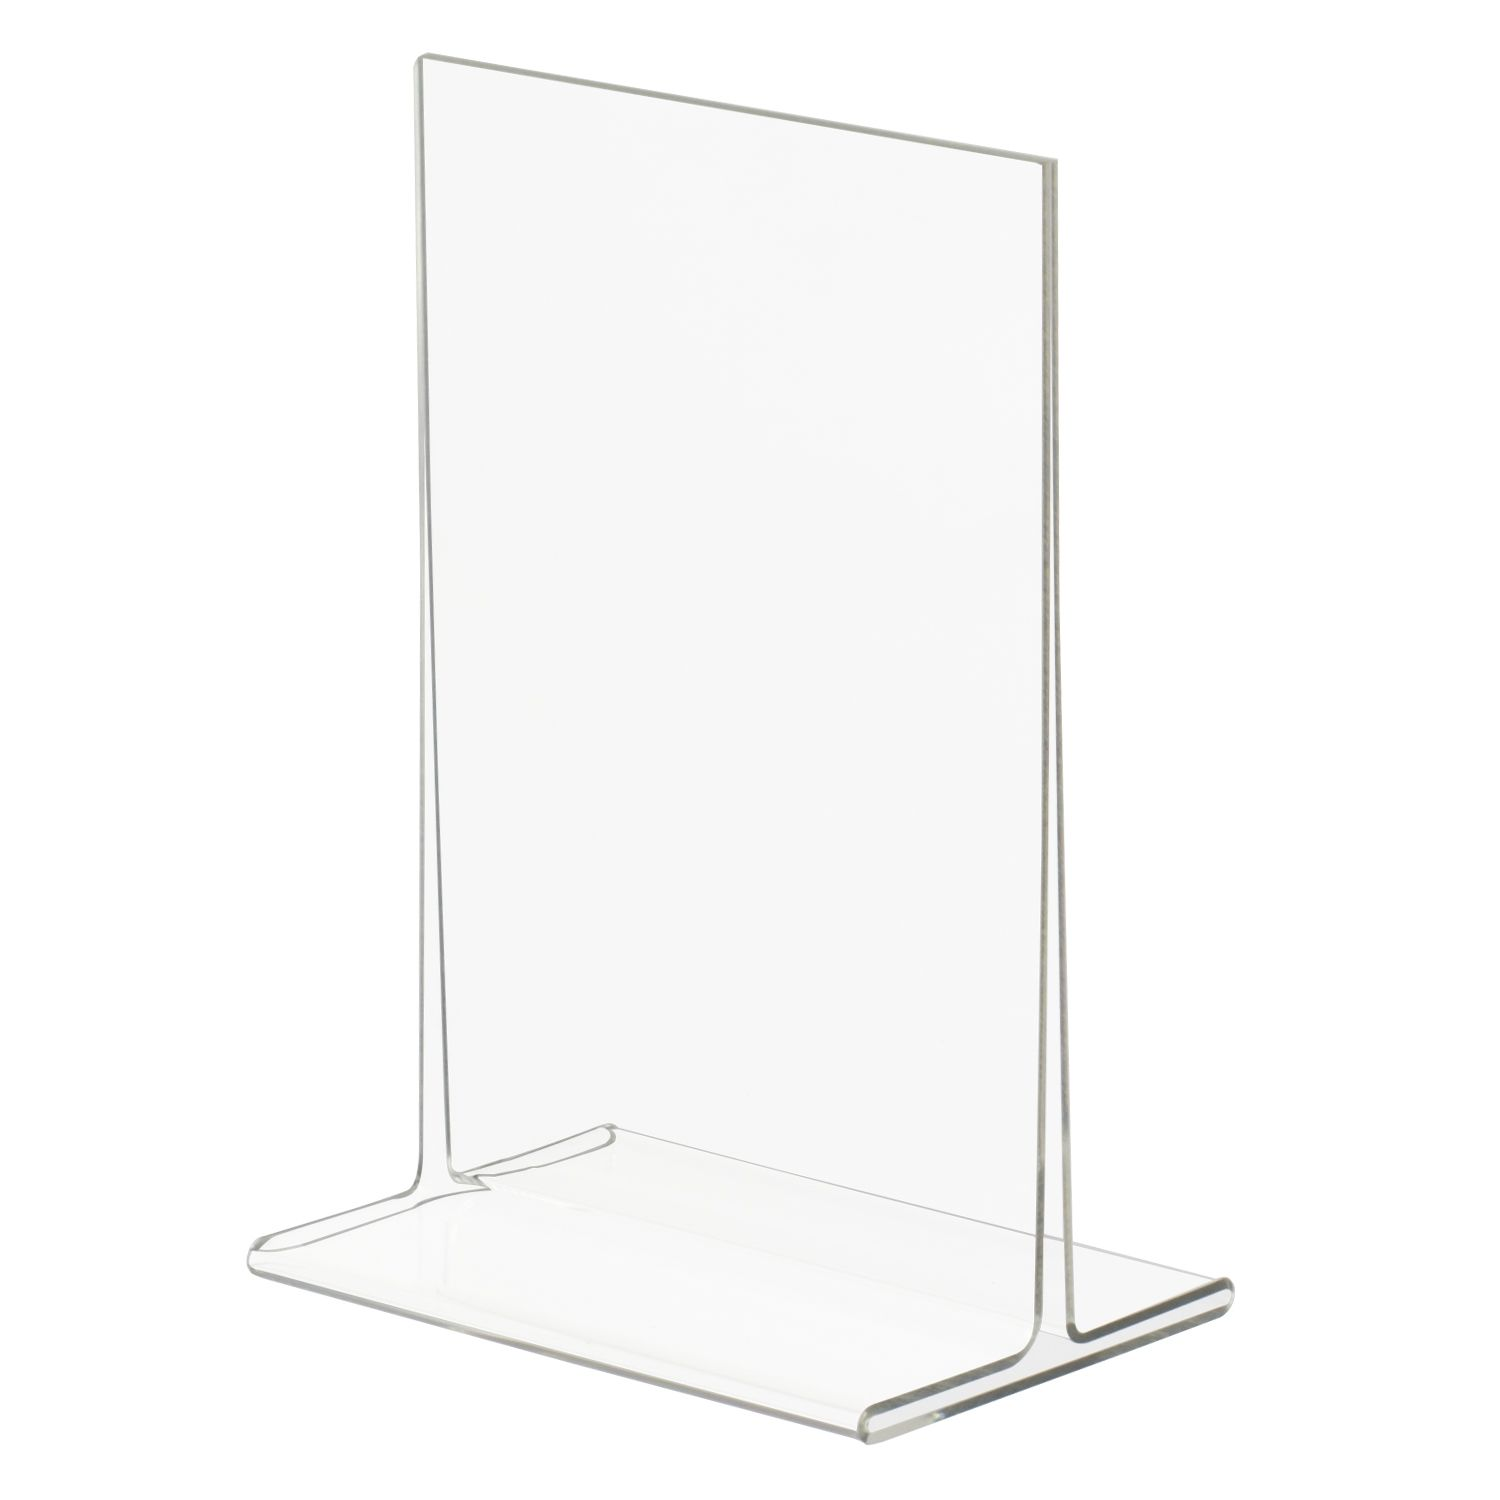 4x6 Top Loading Double Sided Acrylic Sign Holder Acrylic Sign Sign Holder Acrylic Holders